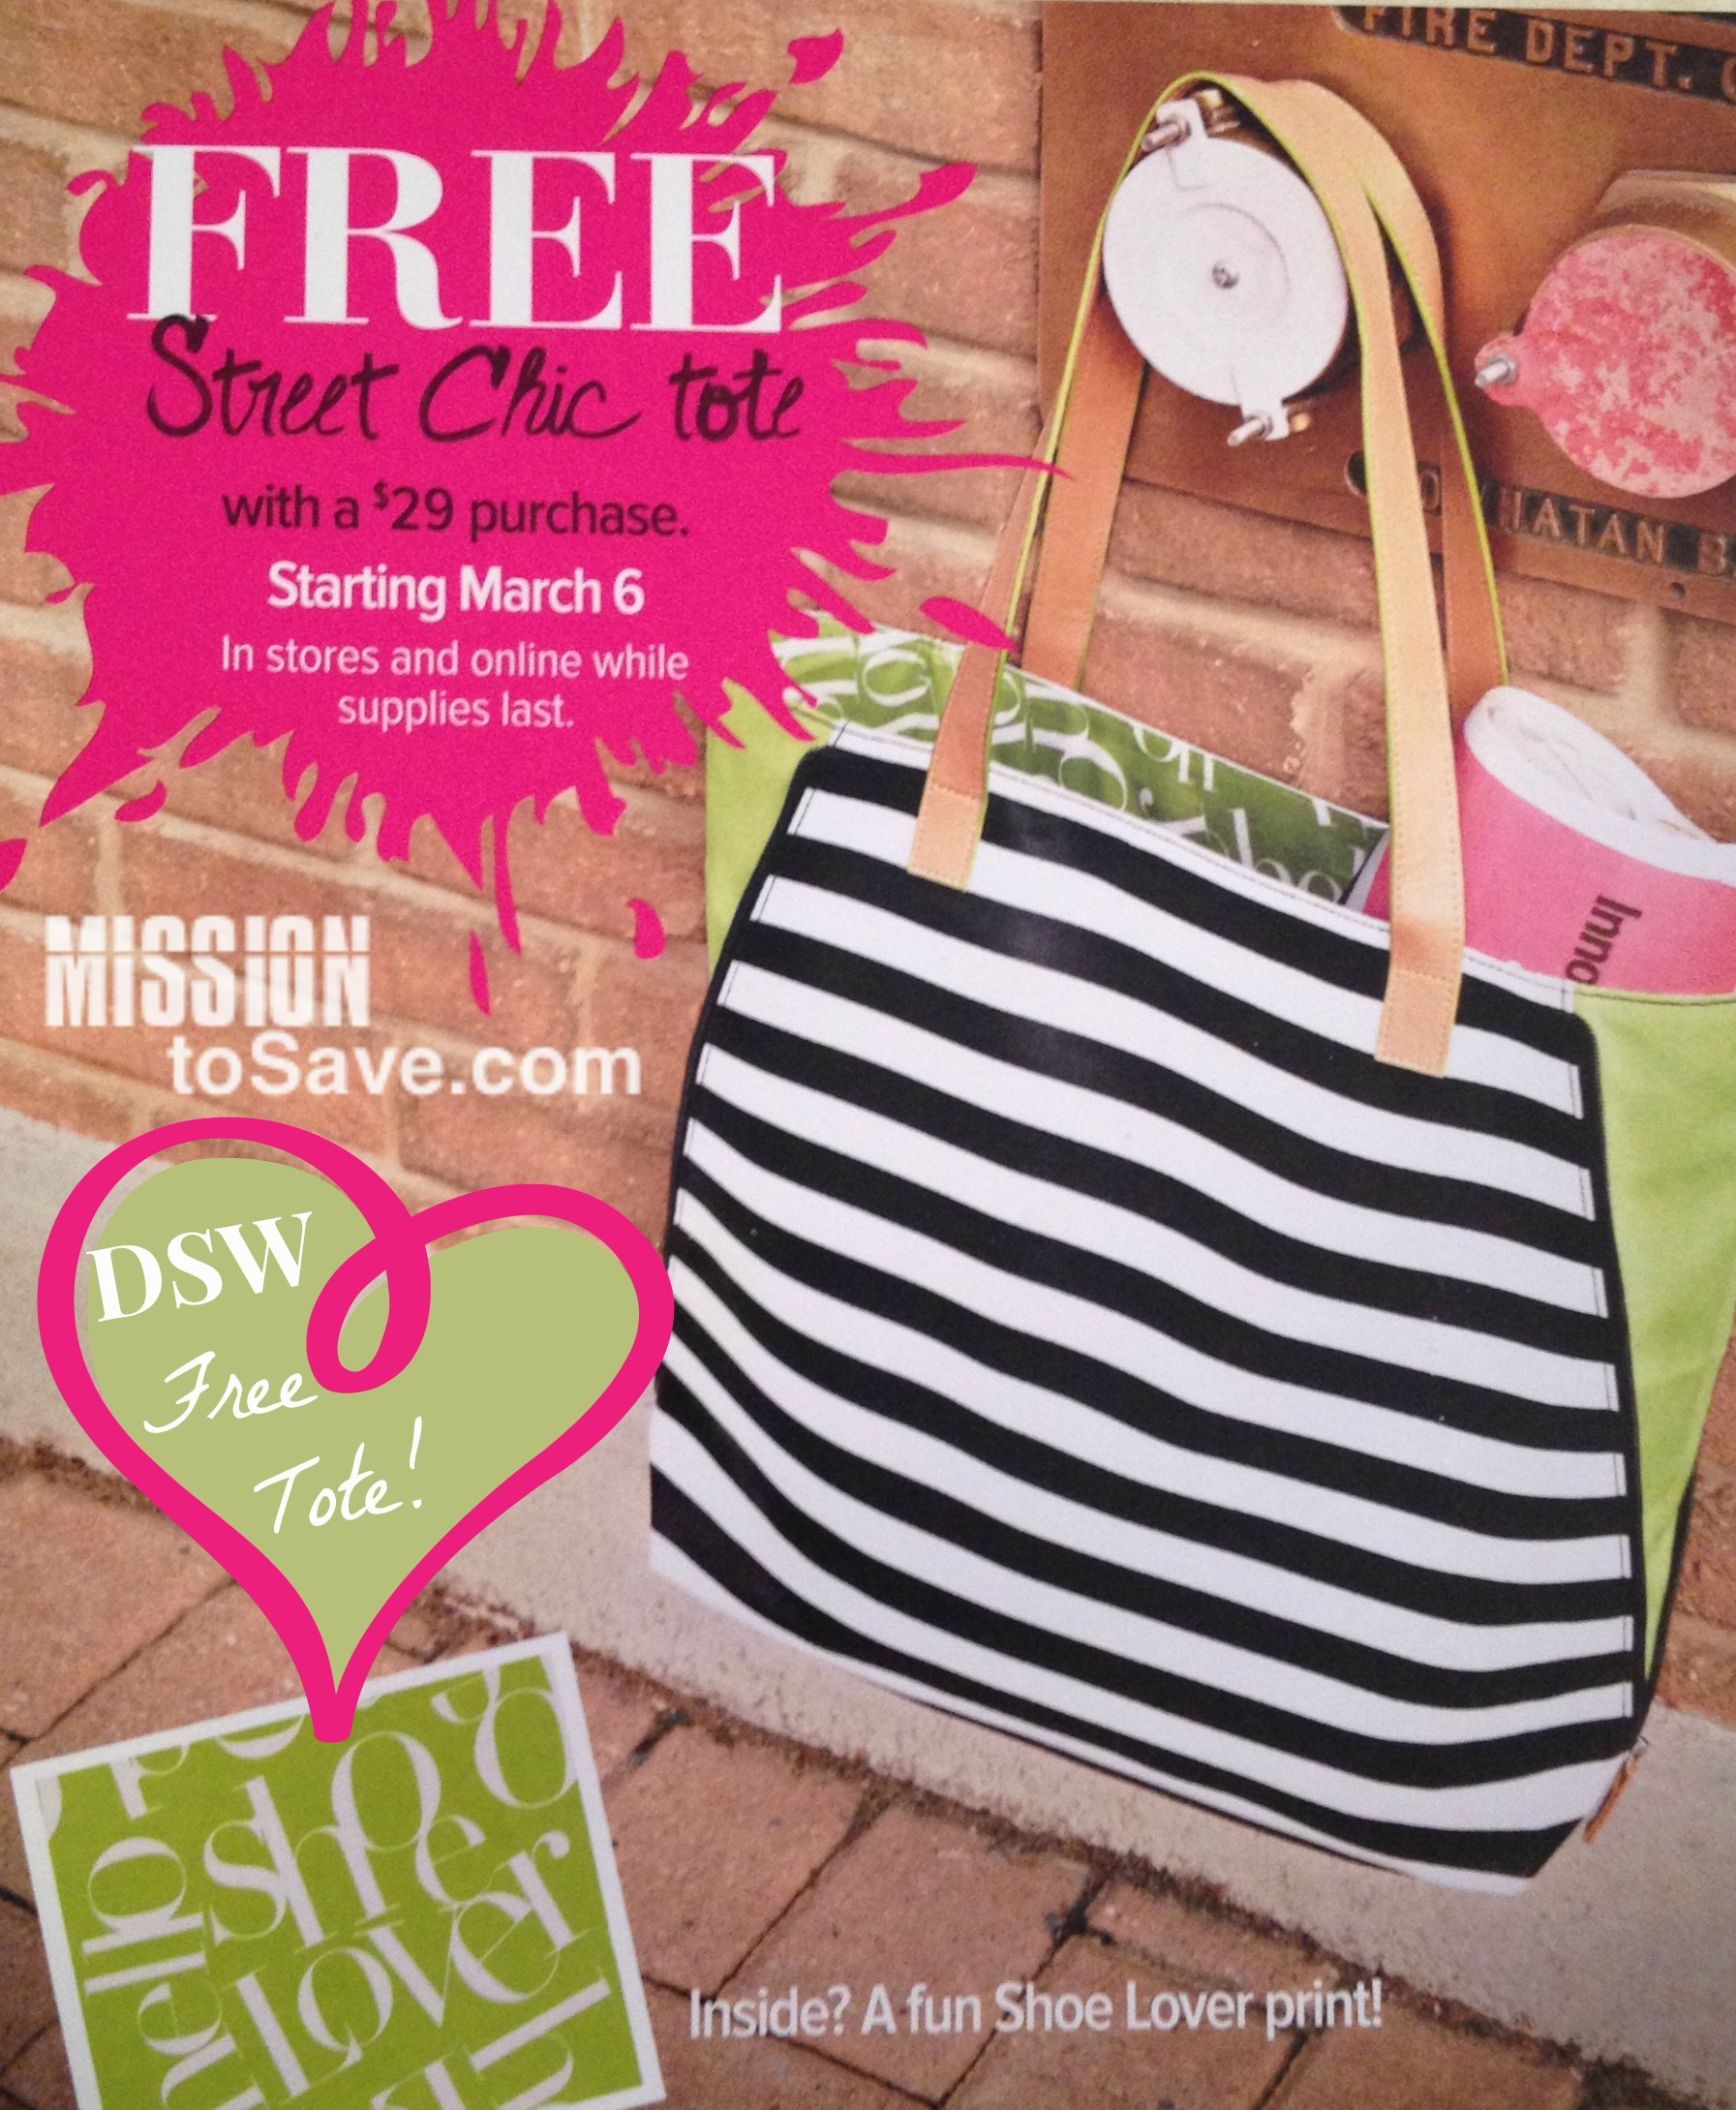 dsw free tote with purchase